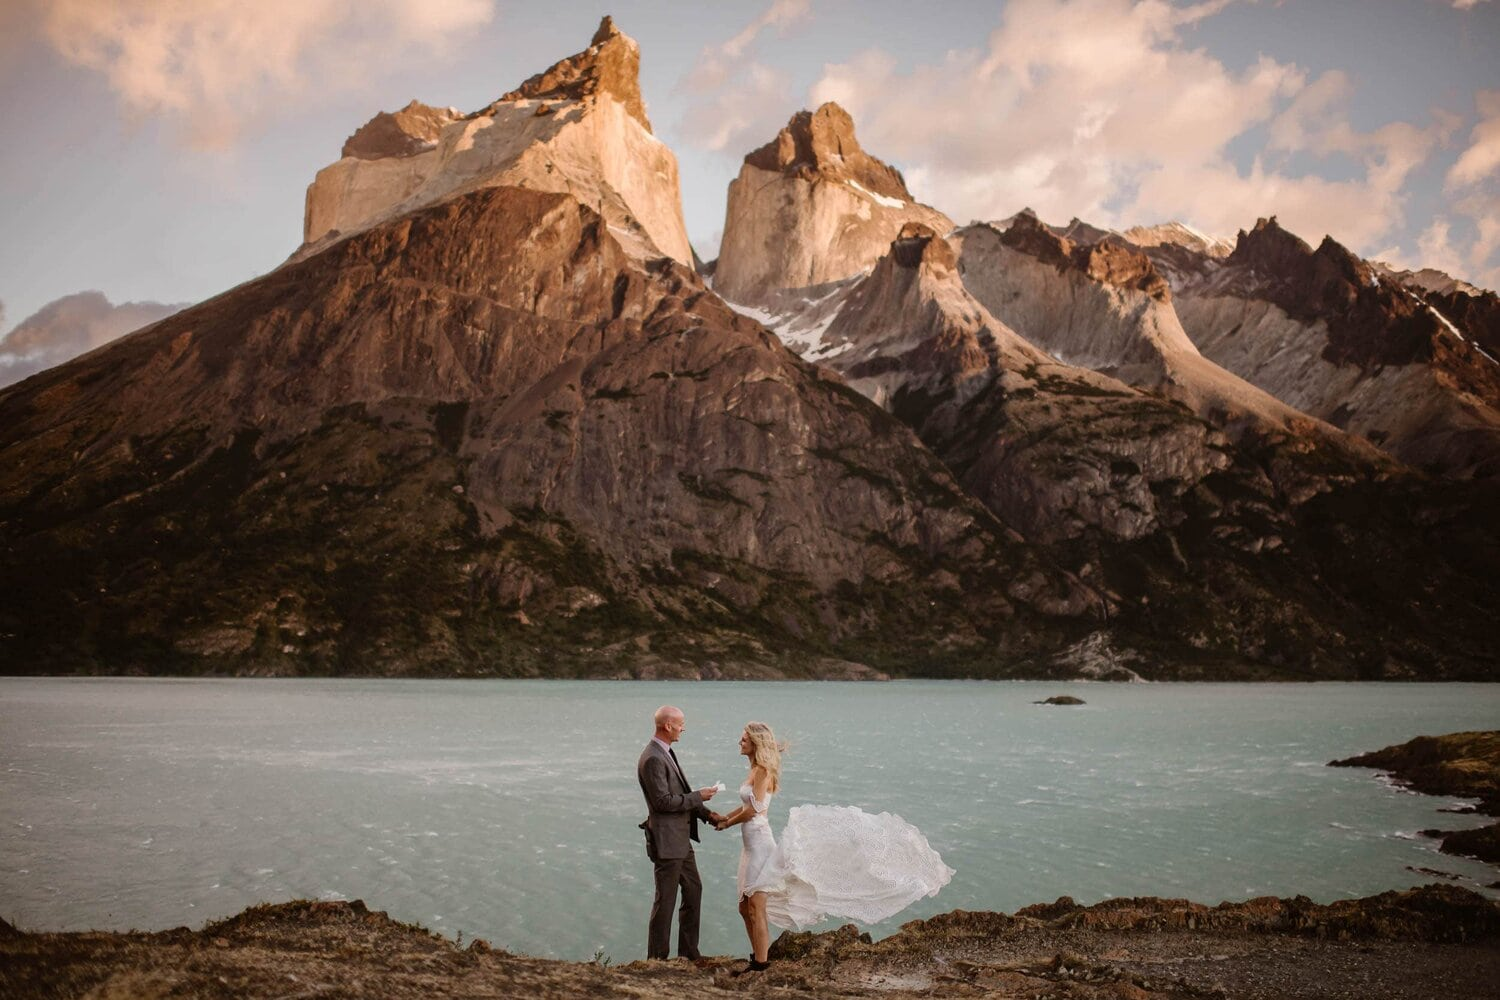 Bride and groom saying their vows in front of a mountain.